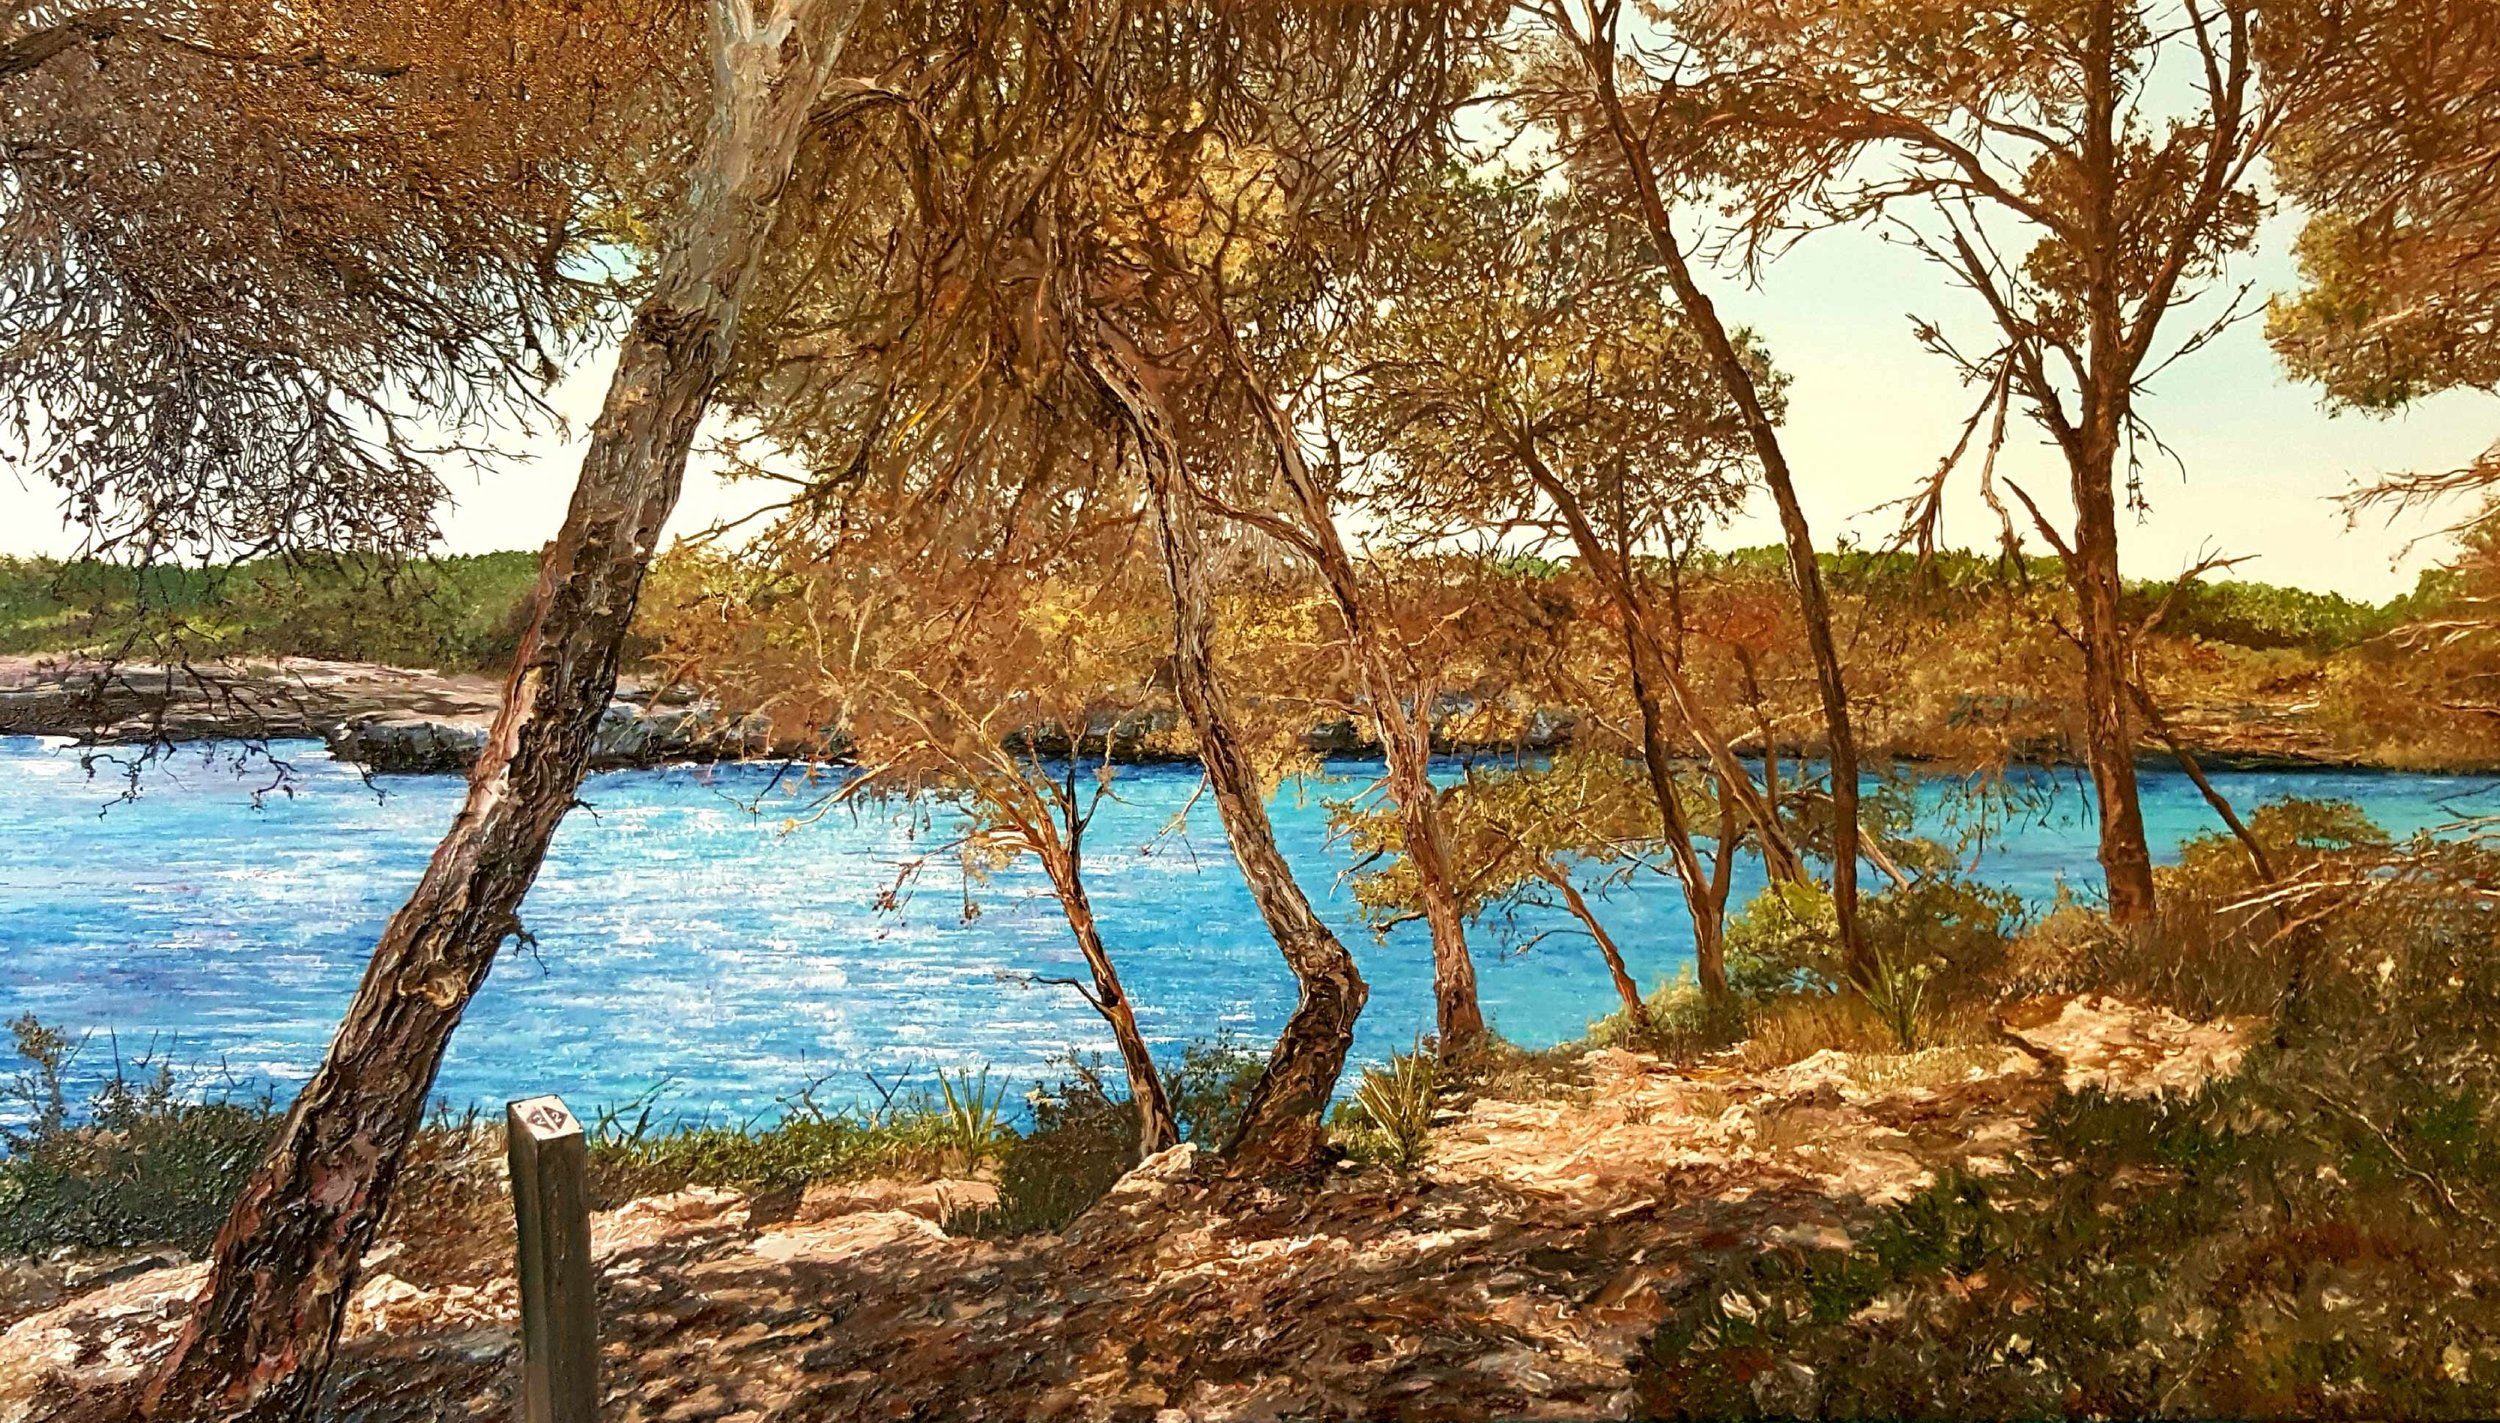 ' Entrance to Cala Mondrago ', 2018, Oil on Canvas, 57 x 101cm.